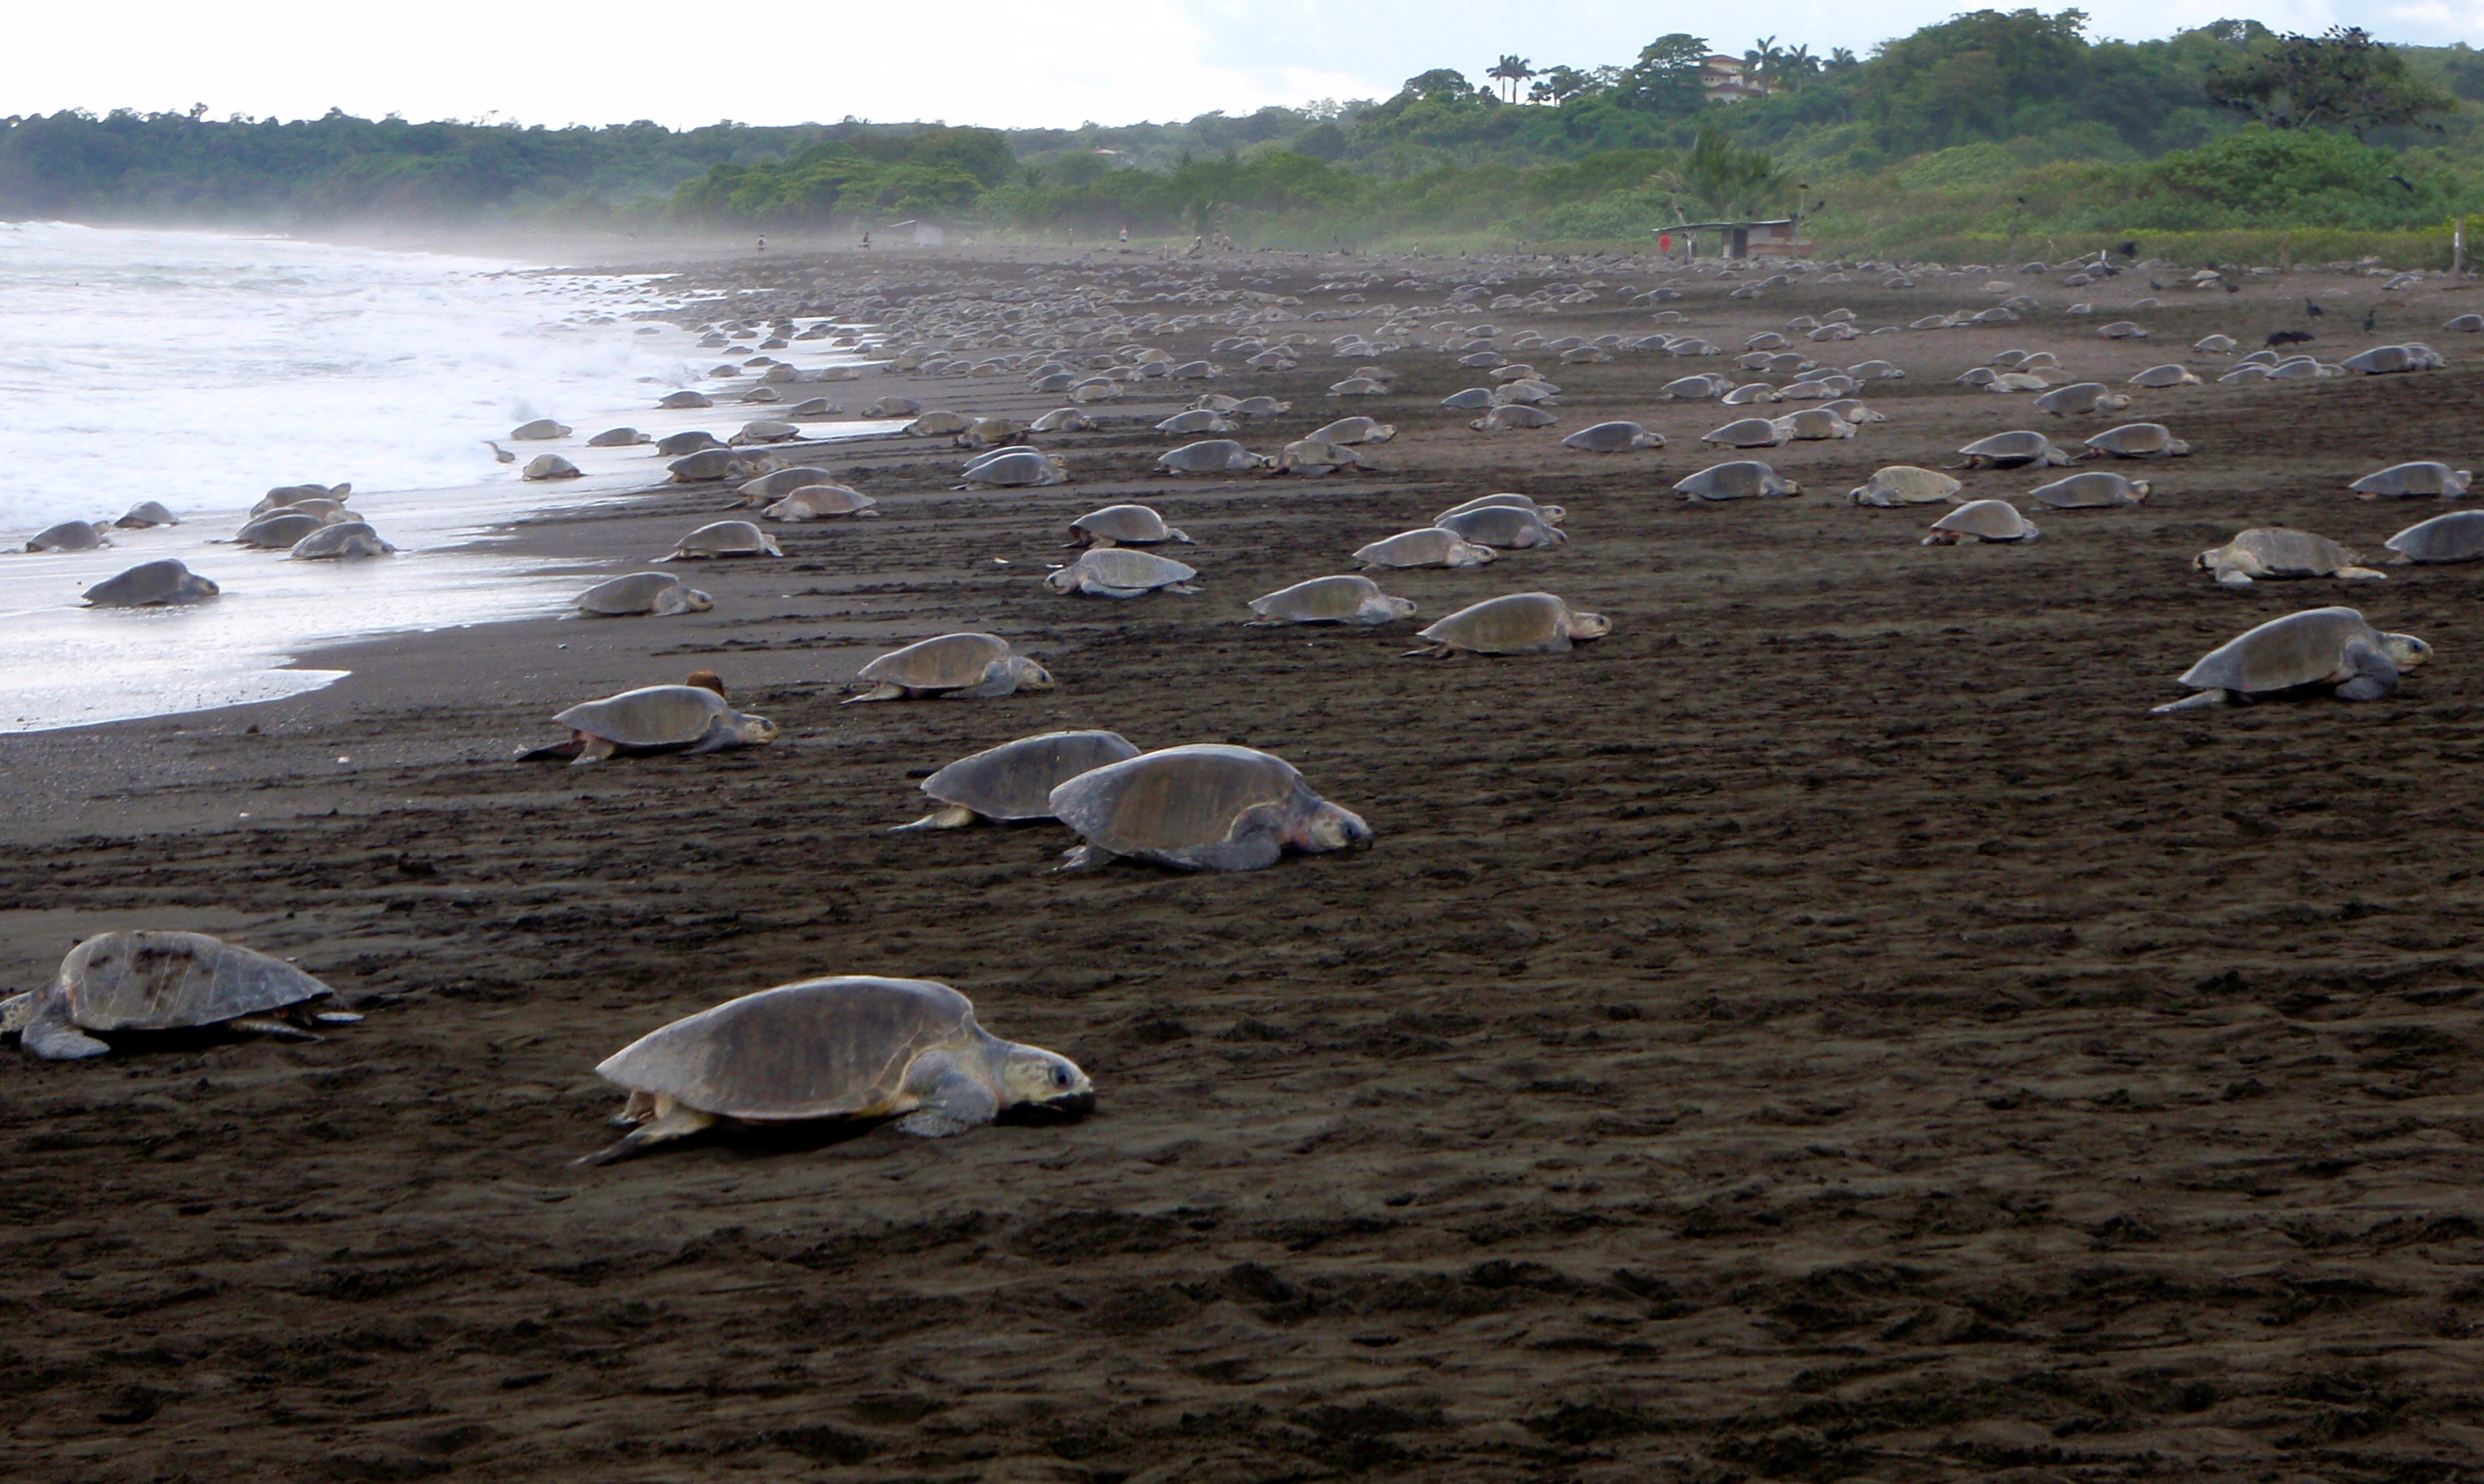 Mass-nesting by olive ridley sea turtles at Ostional, Costa Rica. Photograph by Vanessa Bezy.